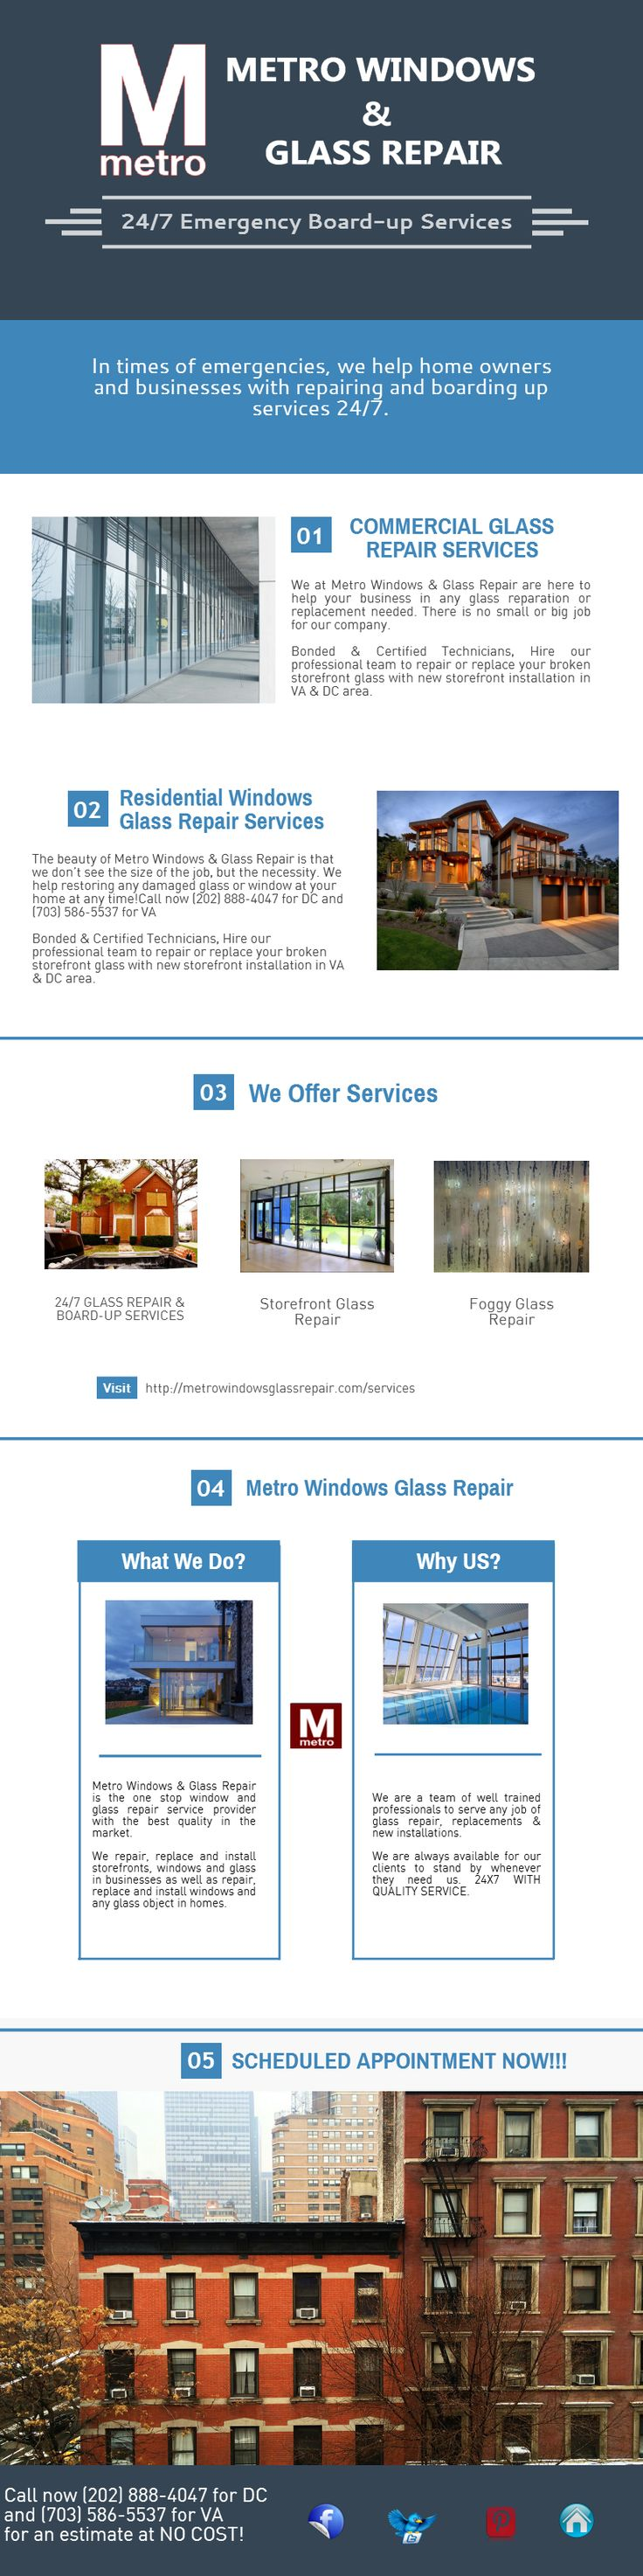 Looking for fast & reliable storefront installation in DC? MWG Repair offers reasonable glass replacement in residential or commercial area. Call on (202) 888-4047